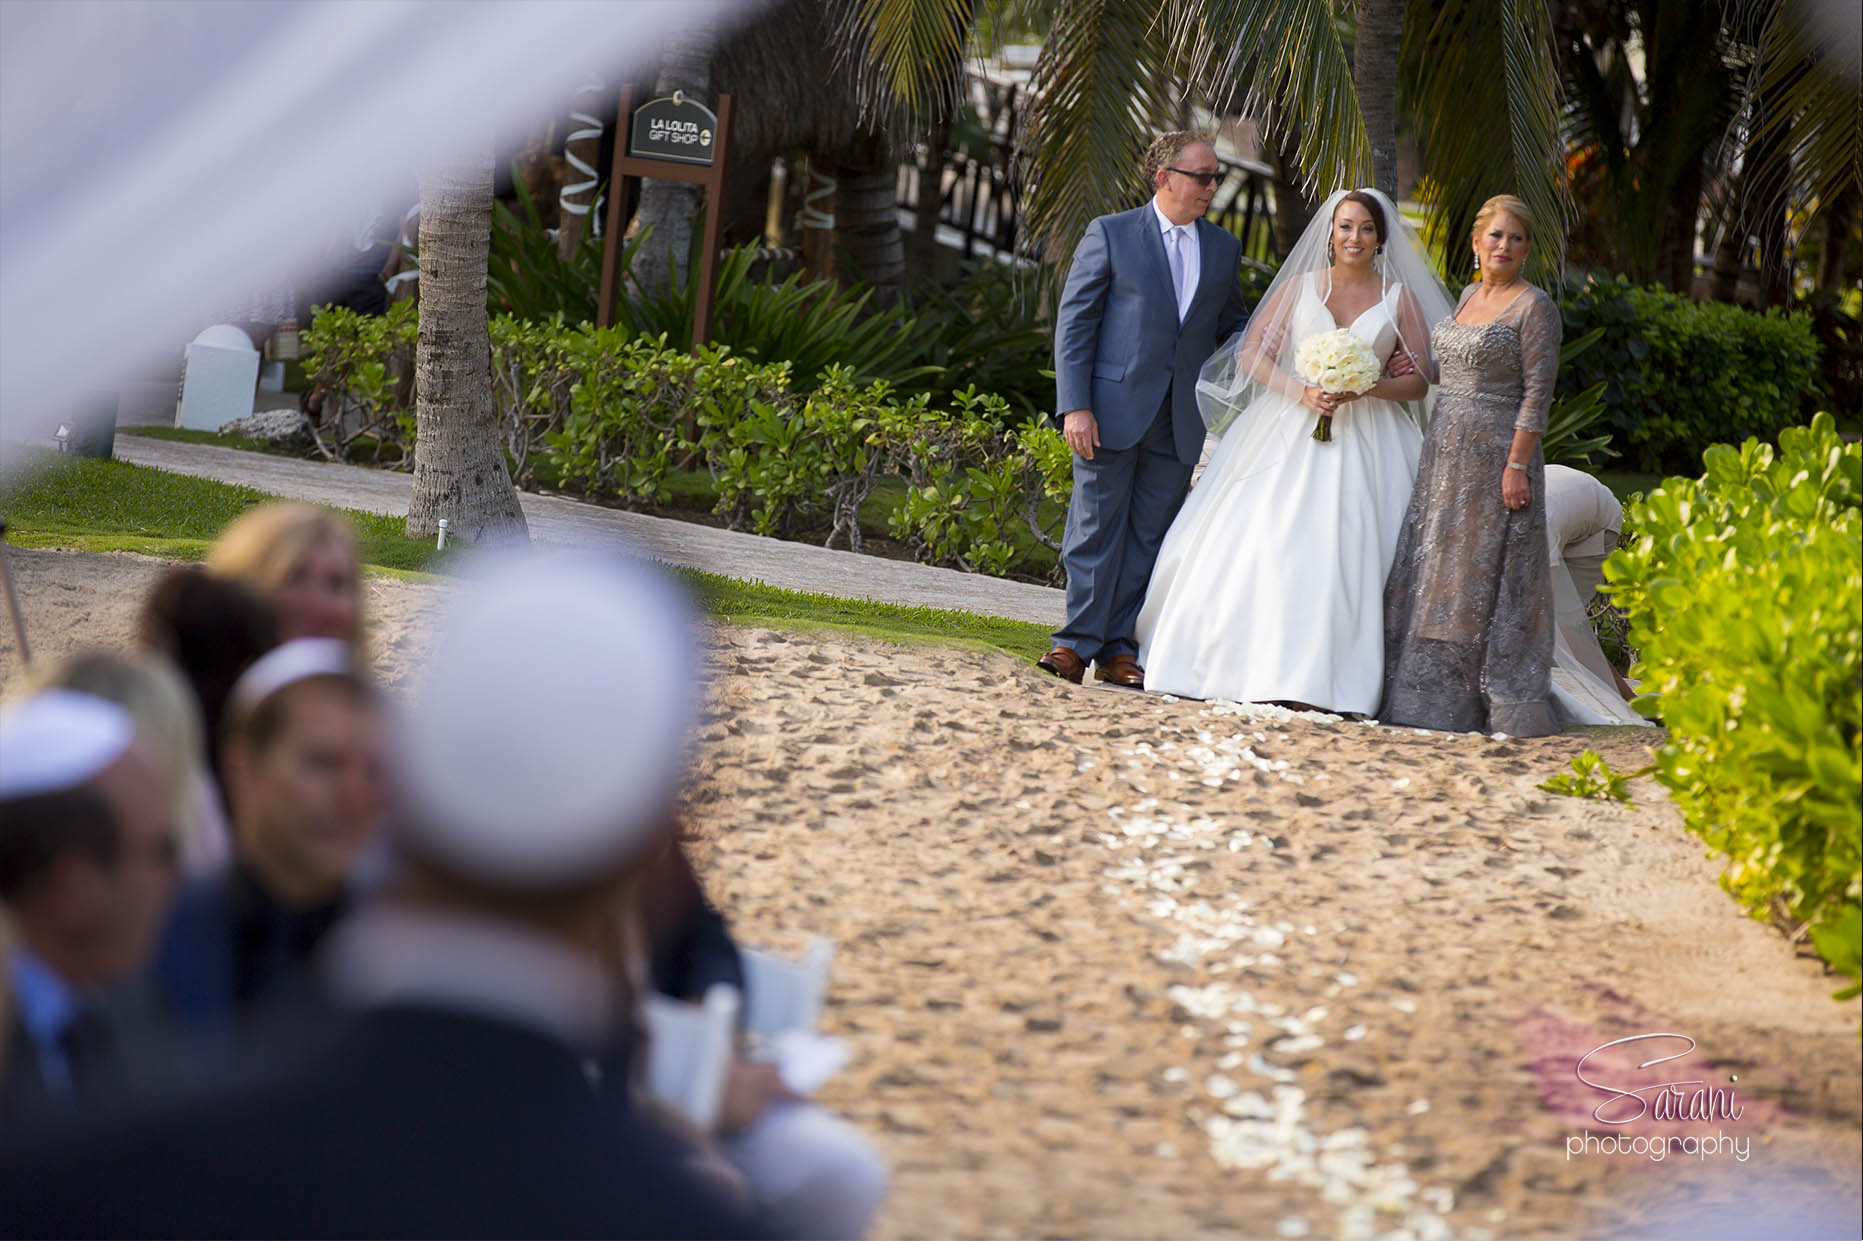 Jewish Wedding at El Dorado Royale